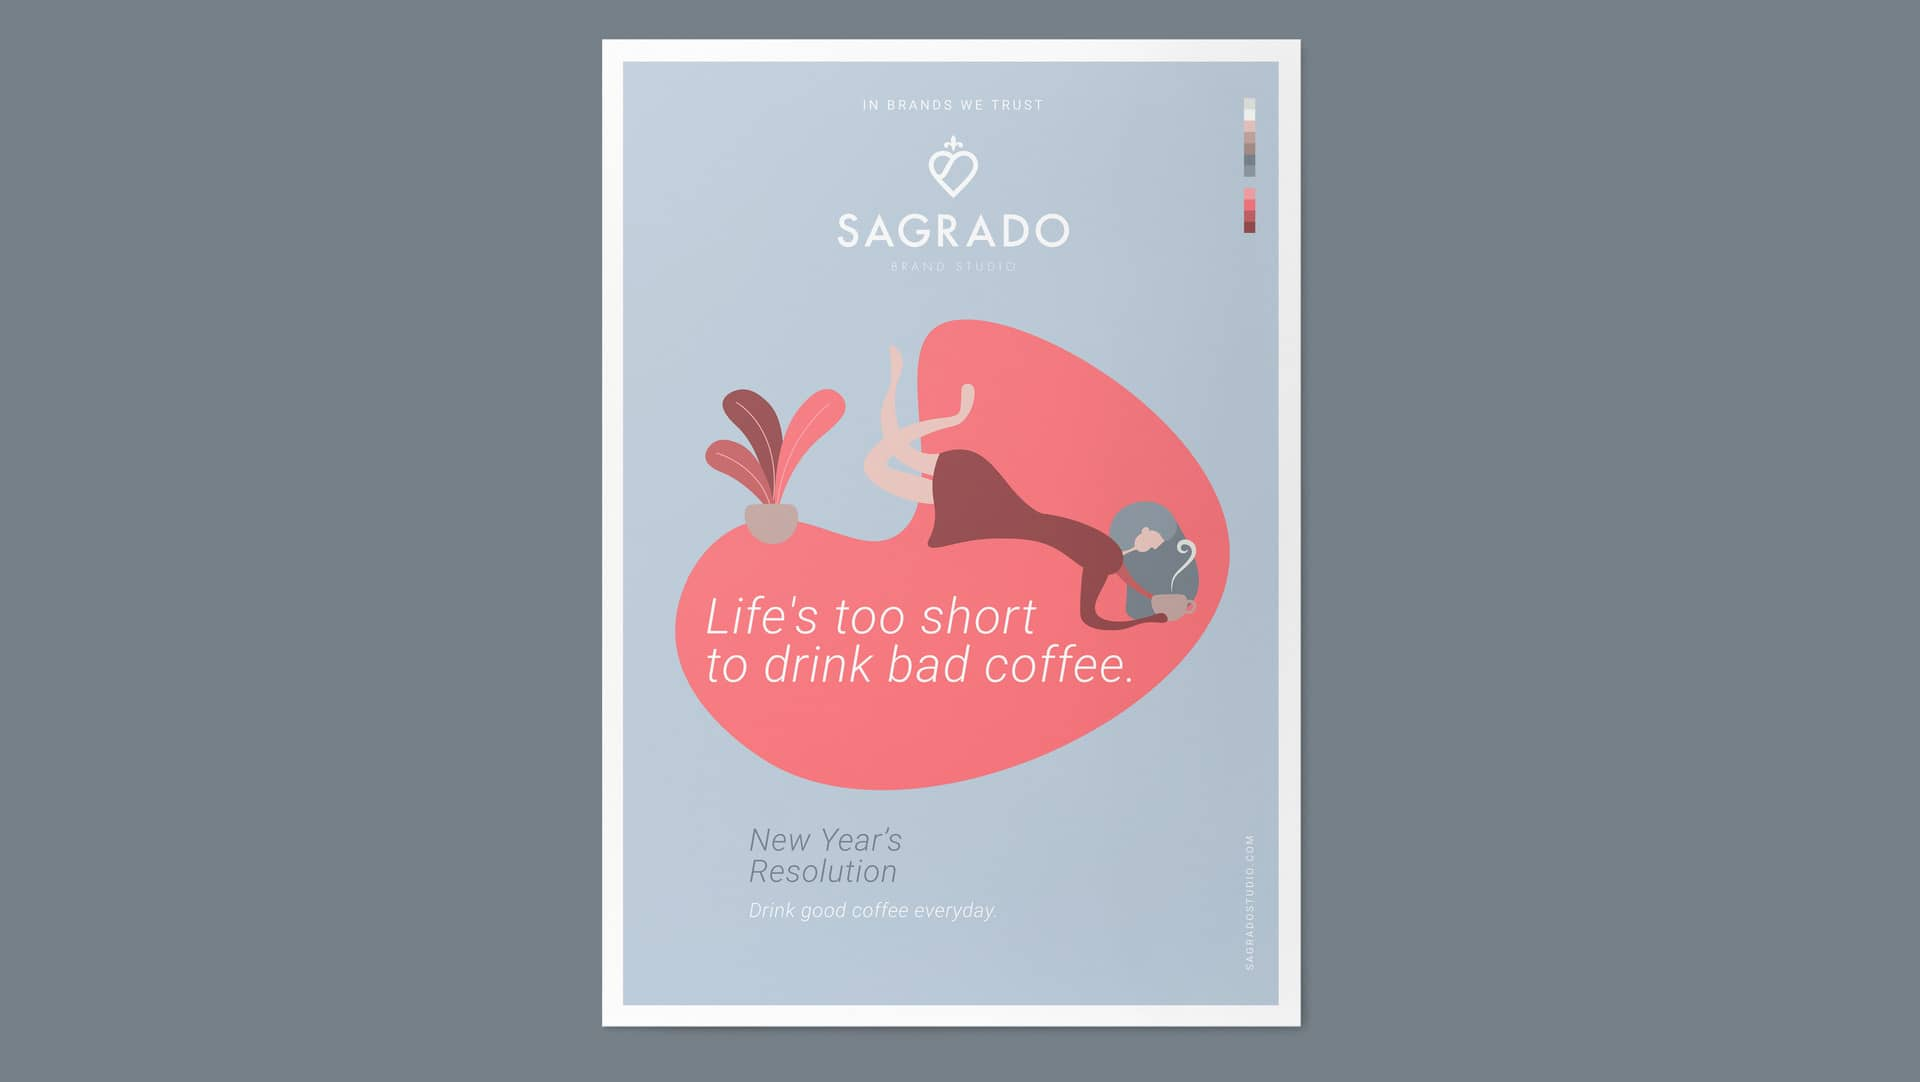 New Years Resolutions - Life is too short to drink bad coffee